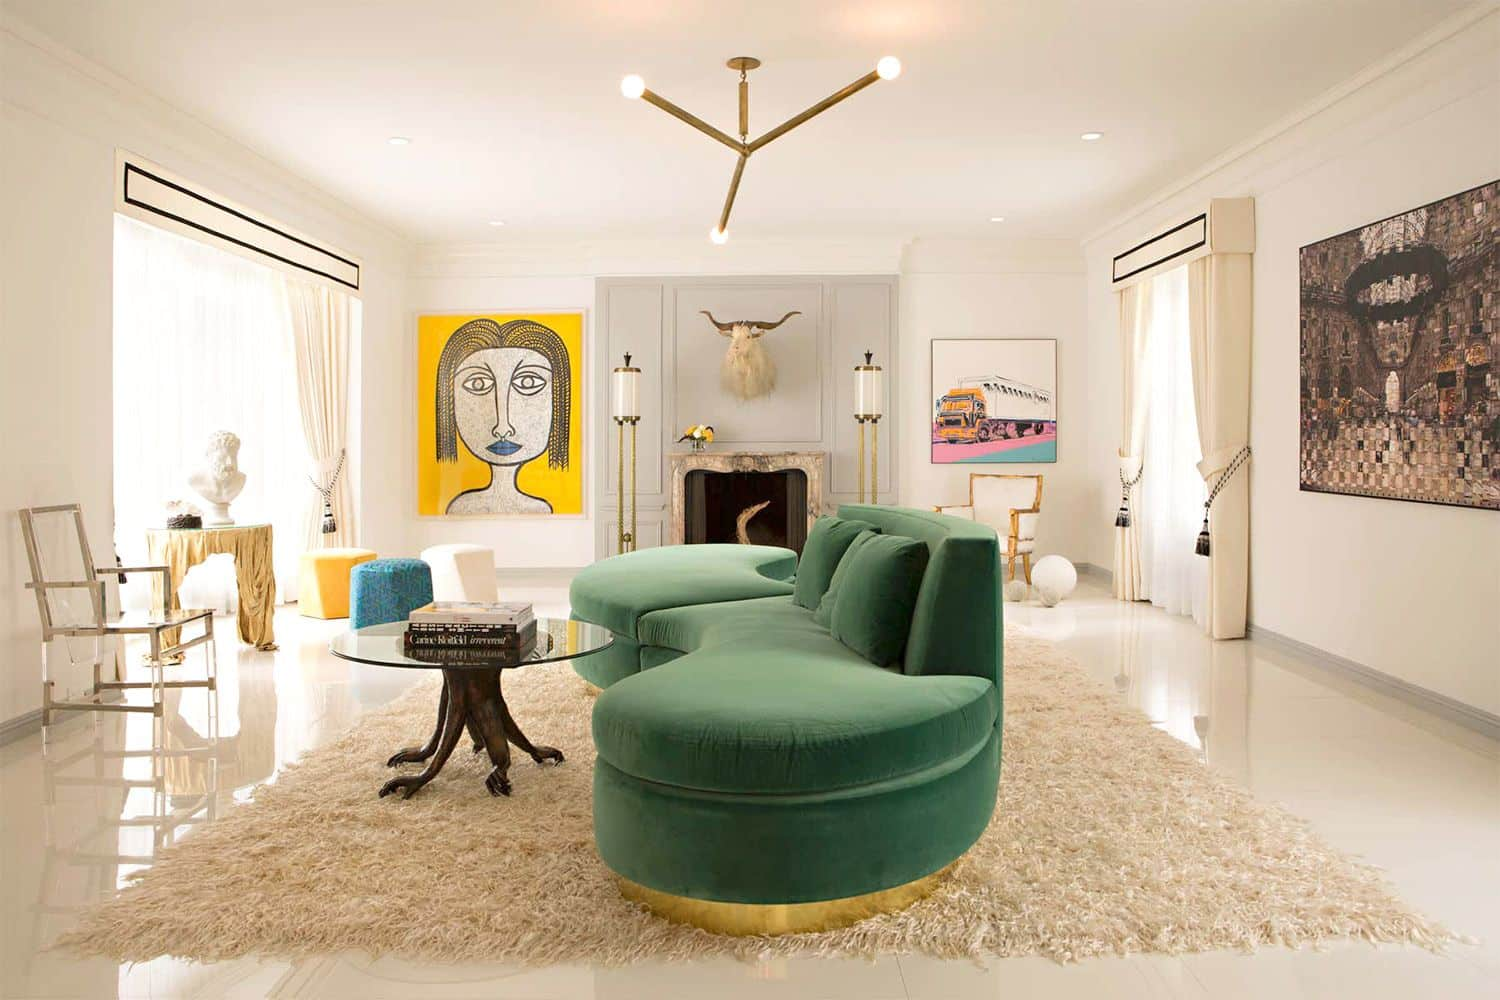 Image of a living room with a green couch and a colored artwork on the walls